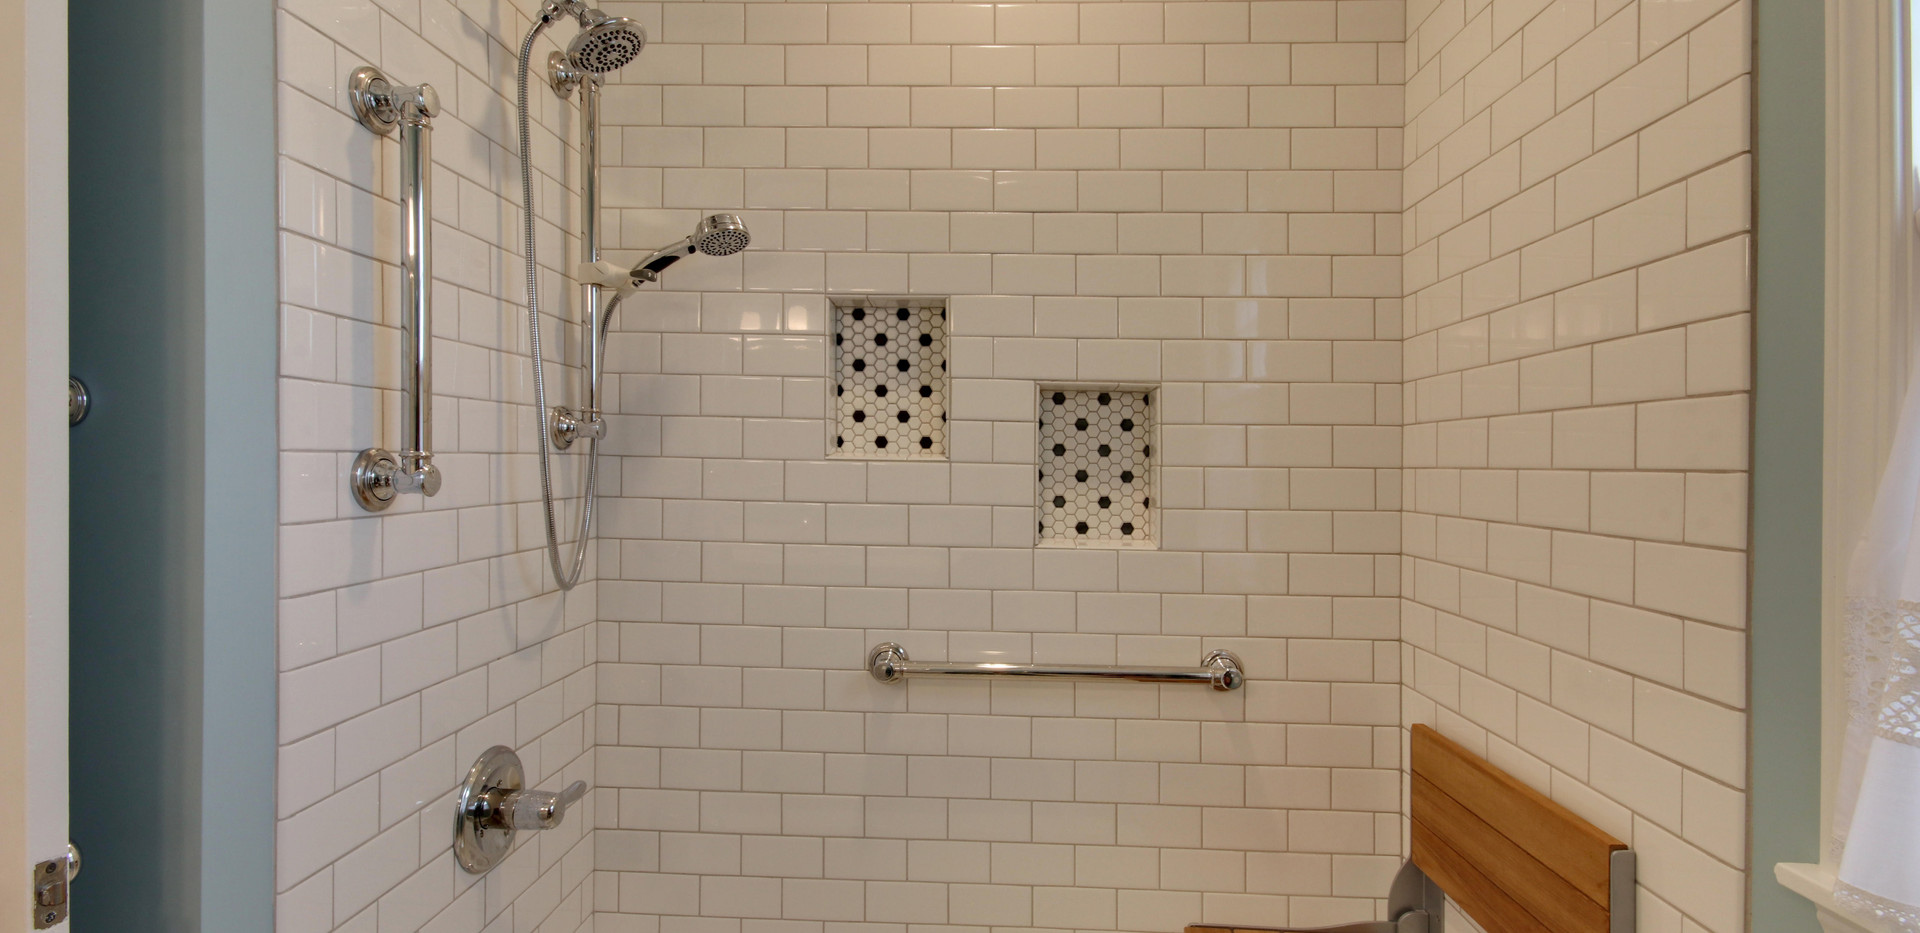 Beautiful new tub shower from Hudsonville bathroom remodel project